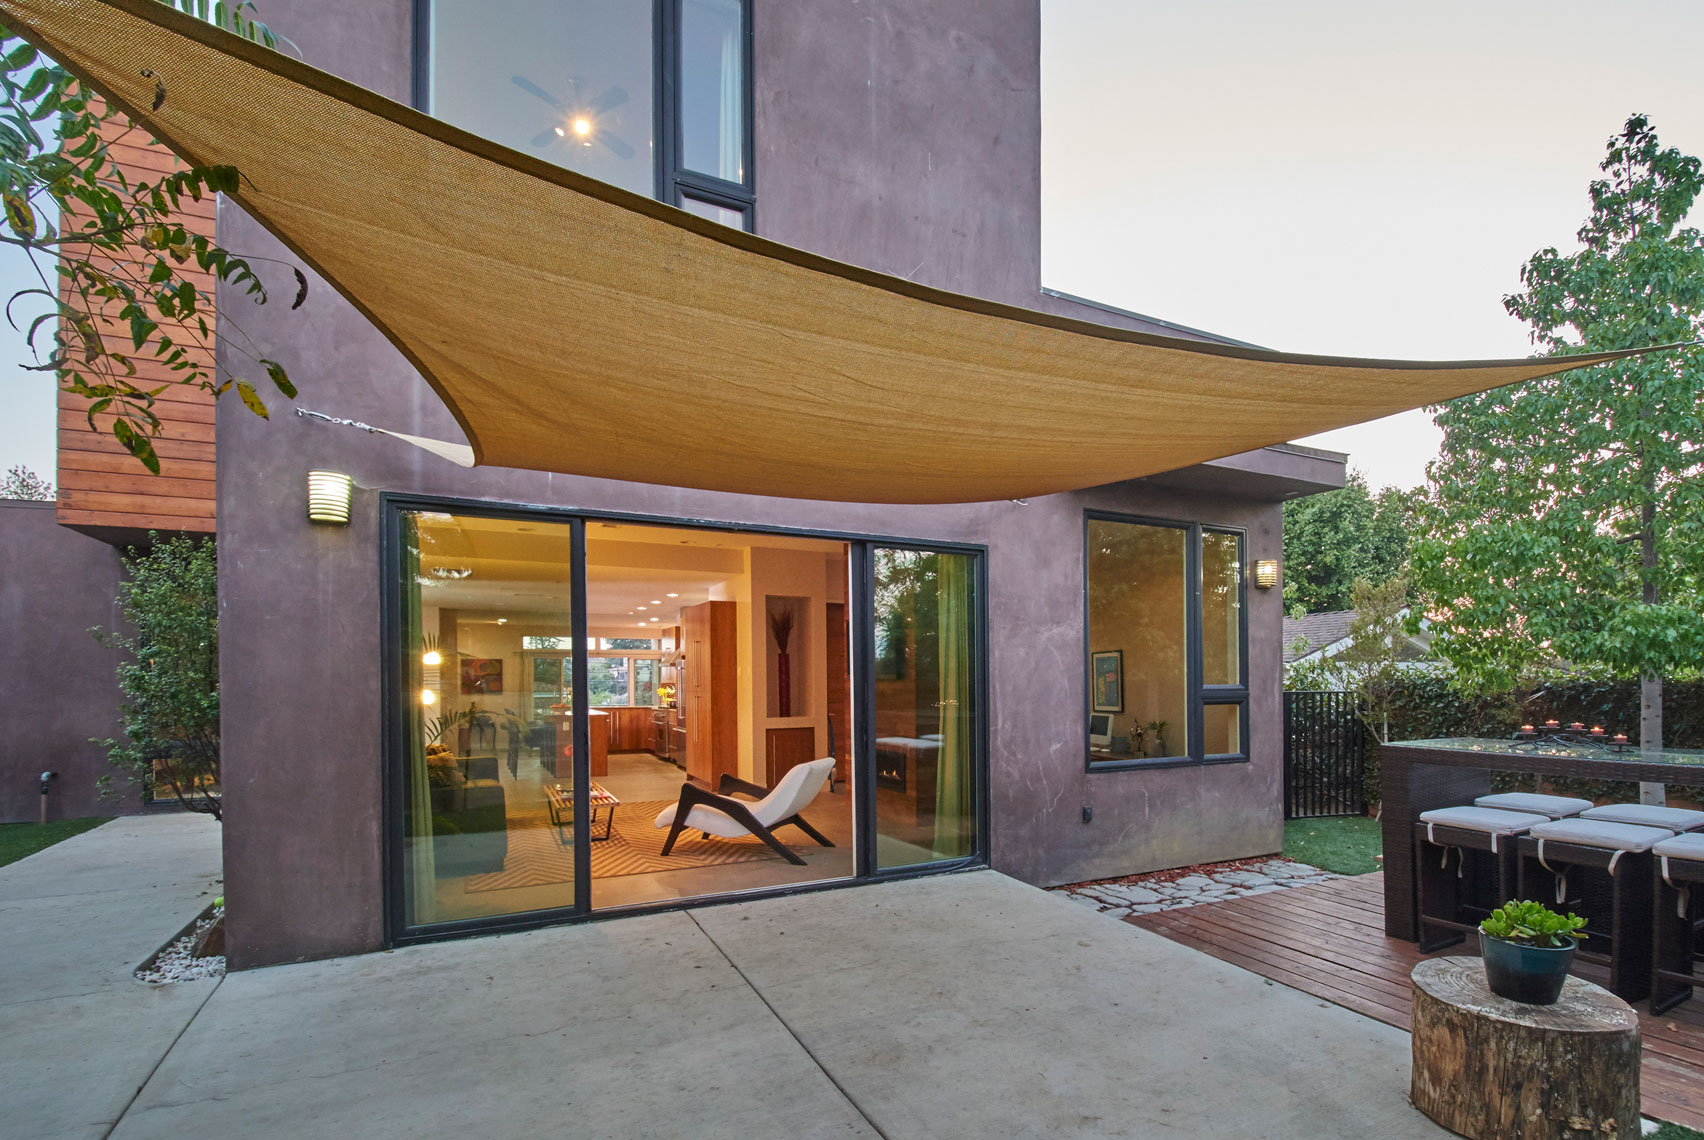 Exterior-rear-twilight-view-through-open-sliding-glass-doors-of-Cypress-park-los-angeles-contemporary-hillside-home